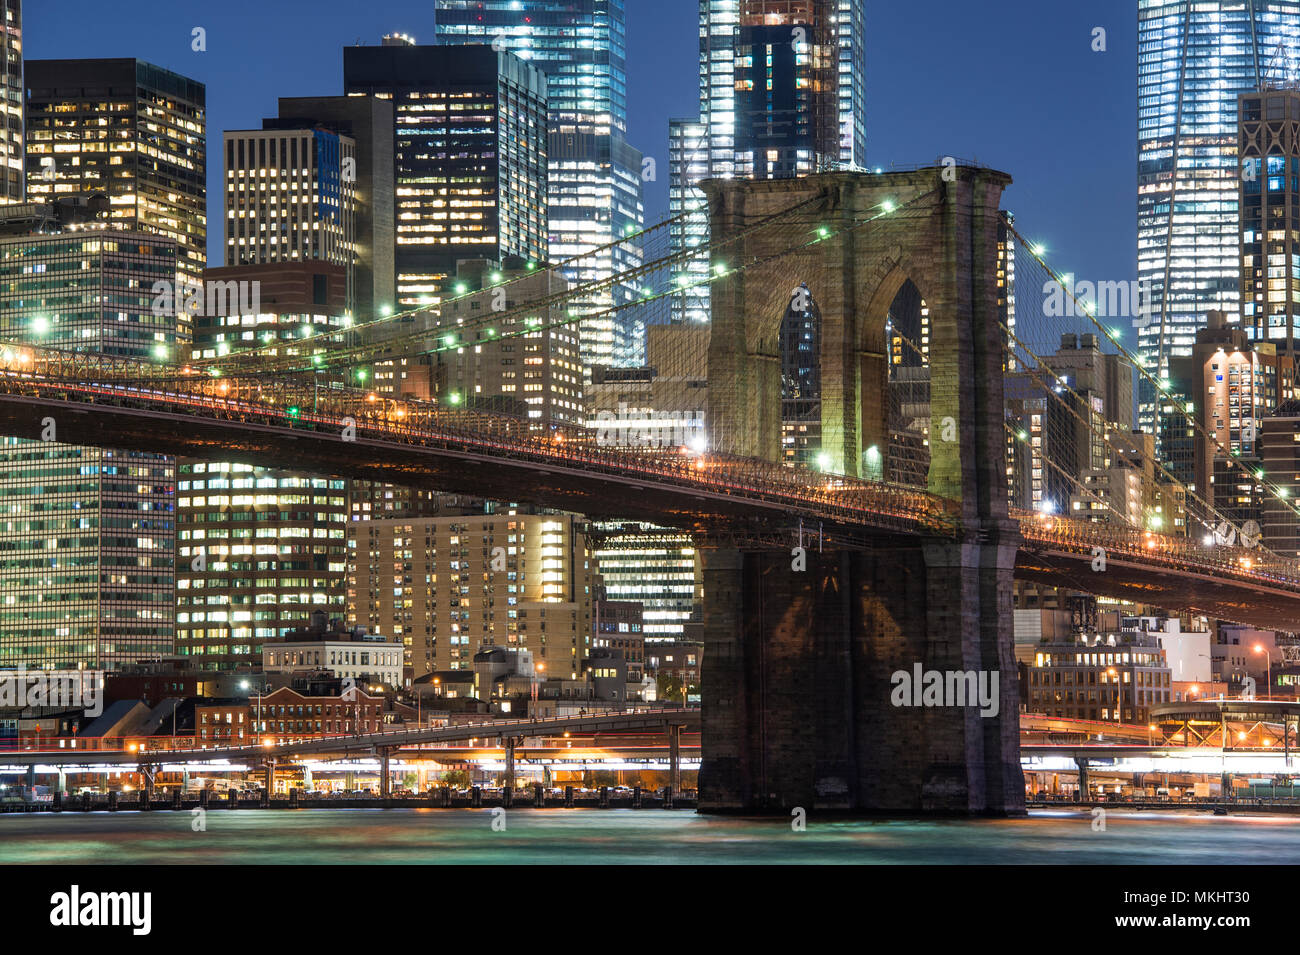 Brooklyn Bridge and the illuminated Skyline of Manhattan in the evening with blue sky and smooth water surface shot from Brooklyn side, New York, Usa. - Stock Image